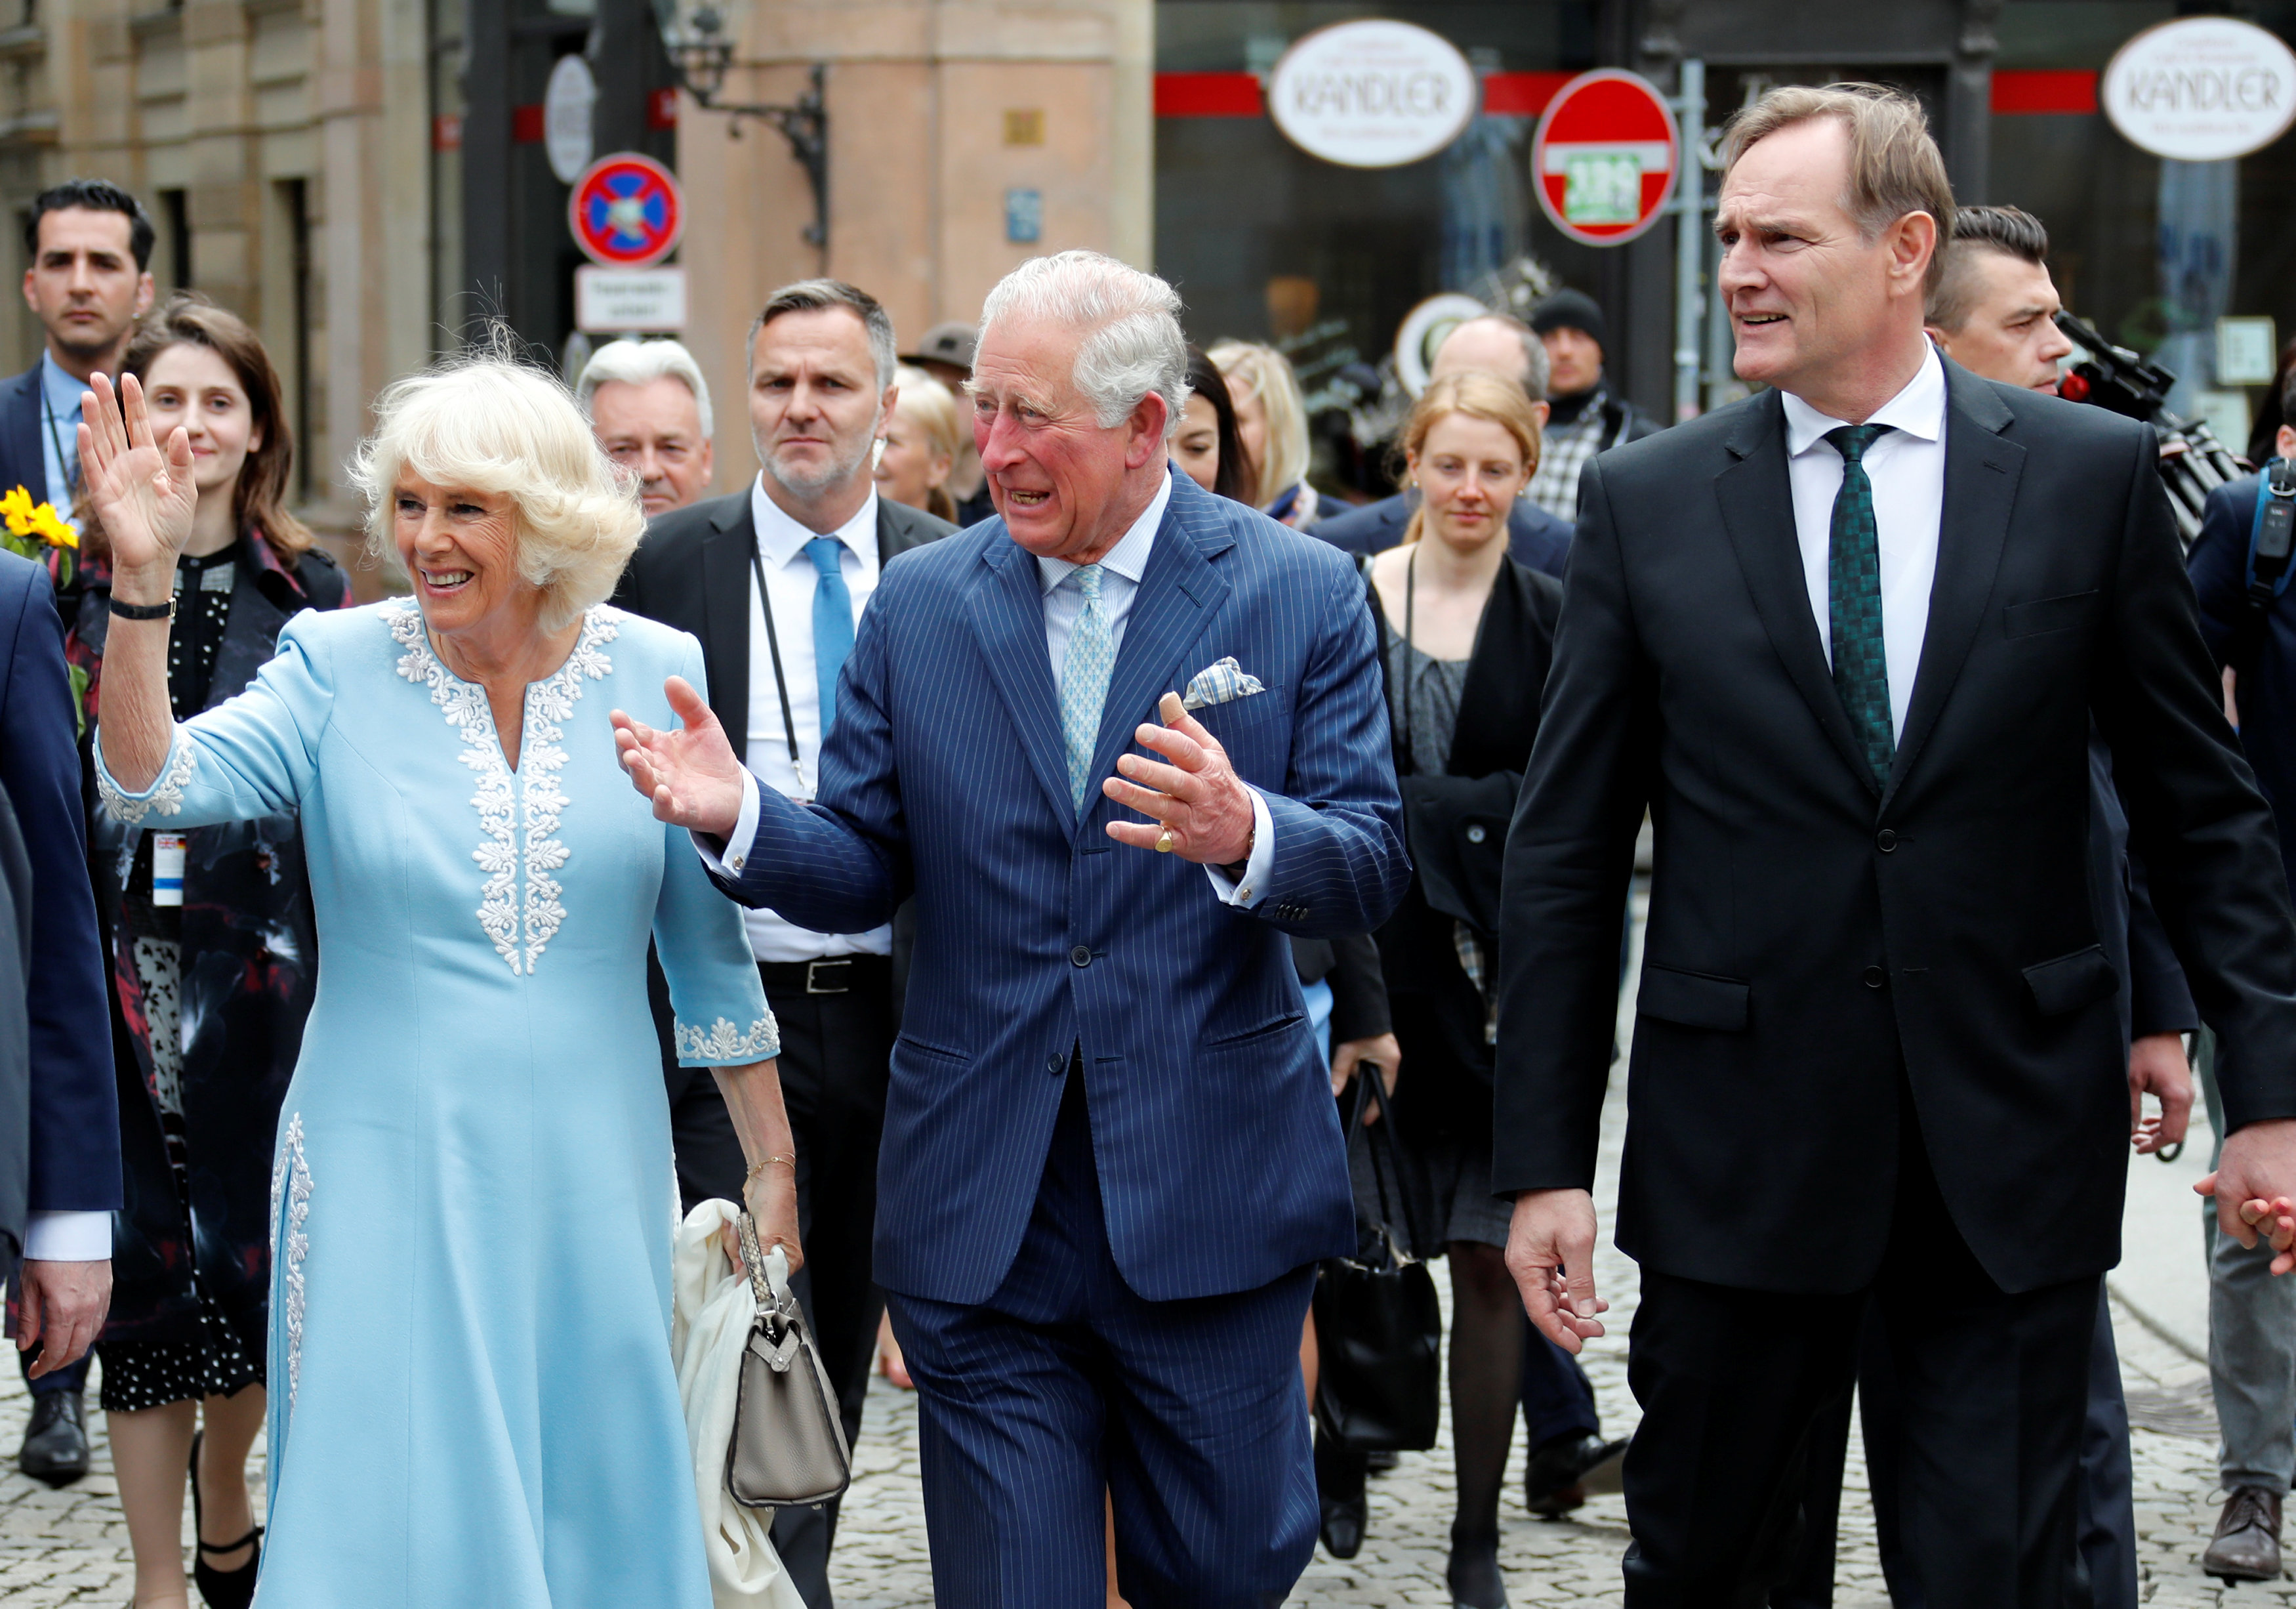 Britain's Prince Charles and Camilla, Duchess of Cornwall walk next to the Mayor of Leipzig Burkhard Jung.